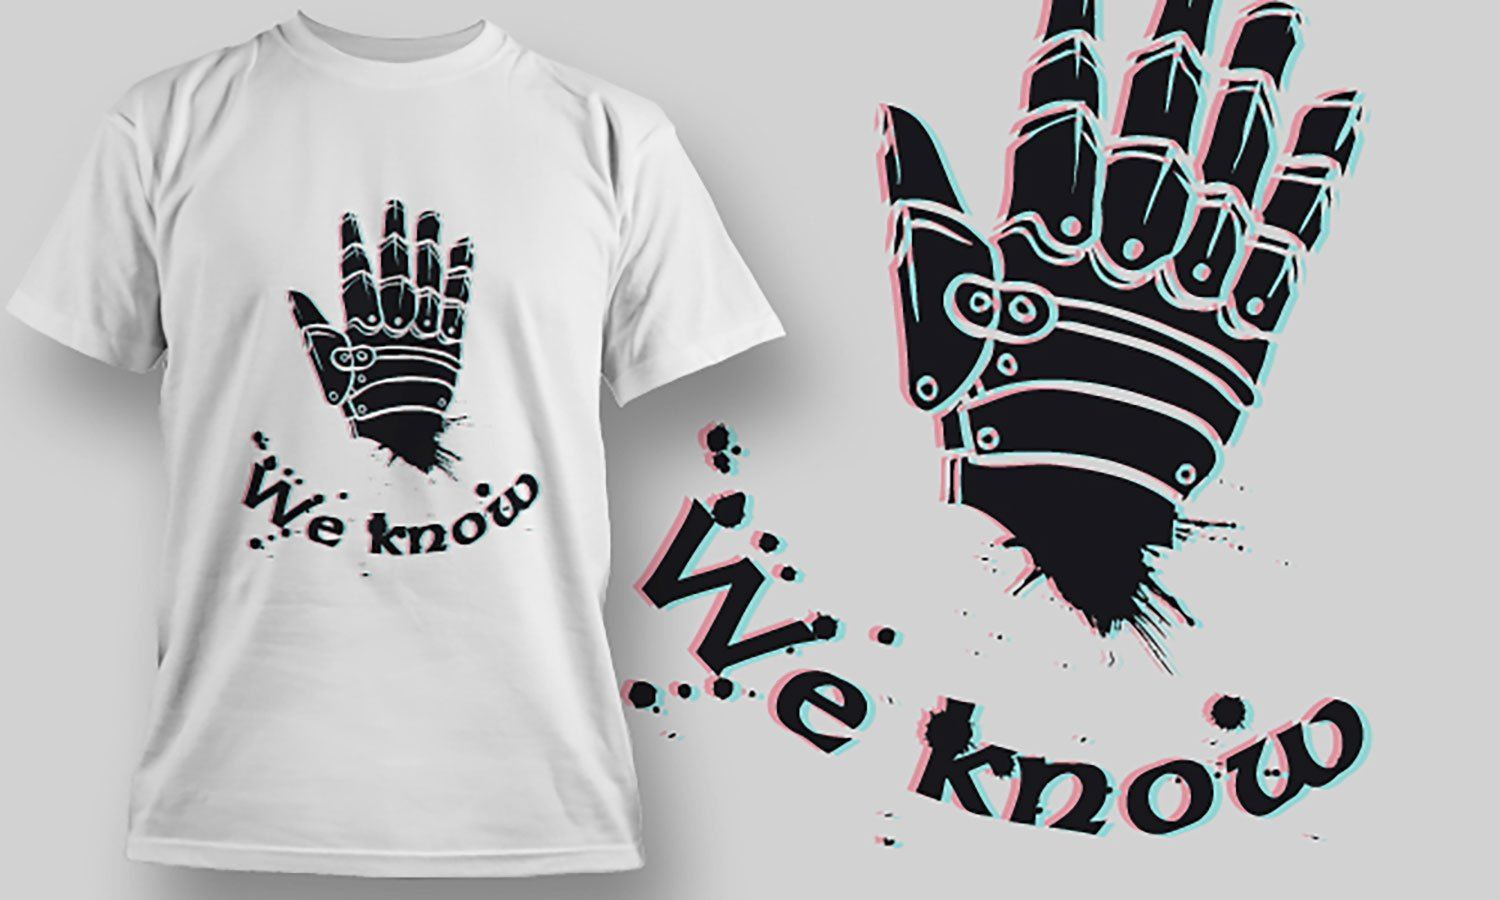 We Know - Printed T-Shirt for Men, Women and Kids - TS263